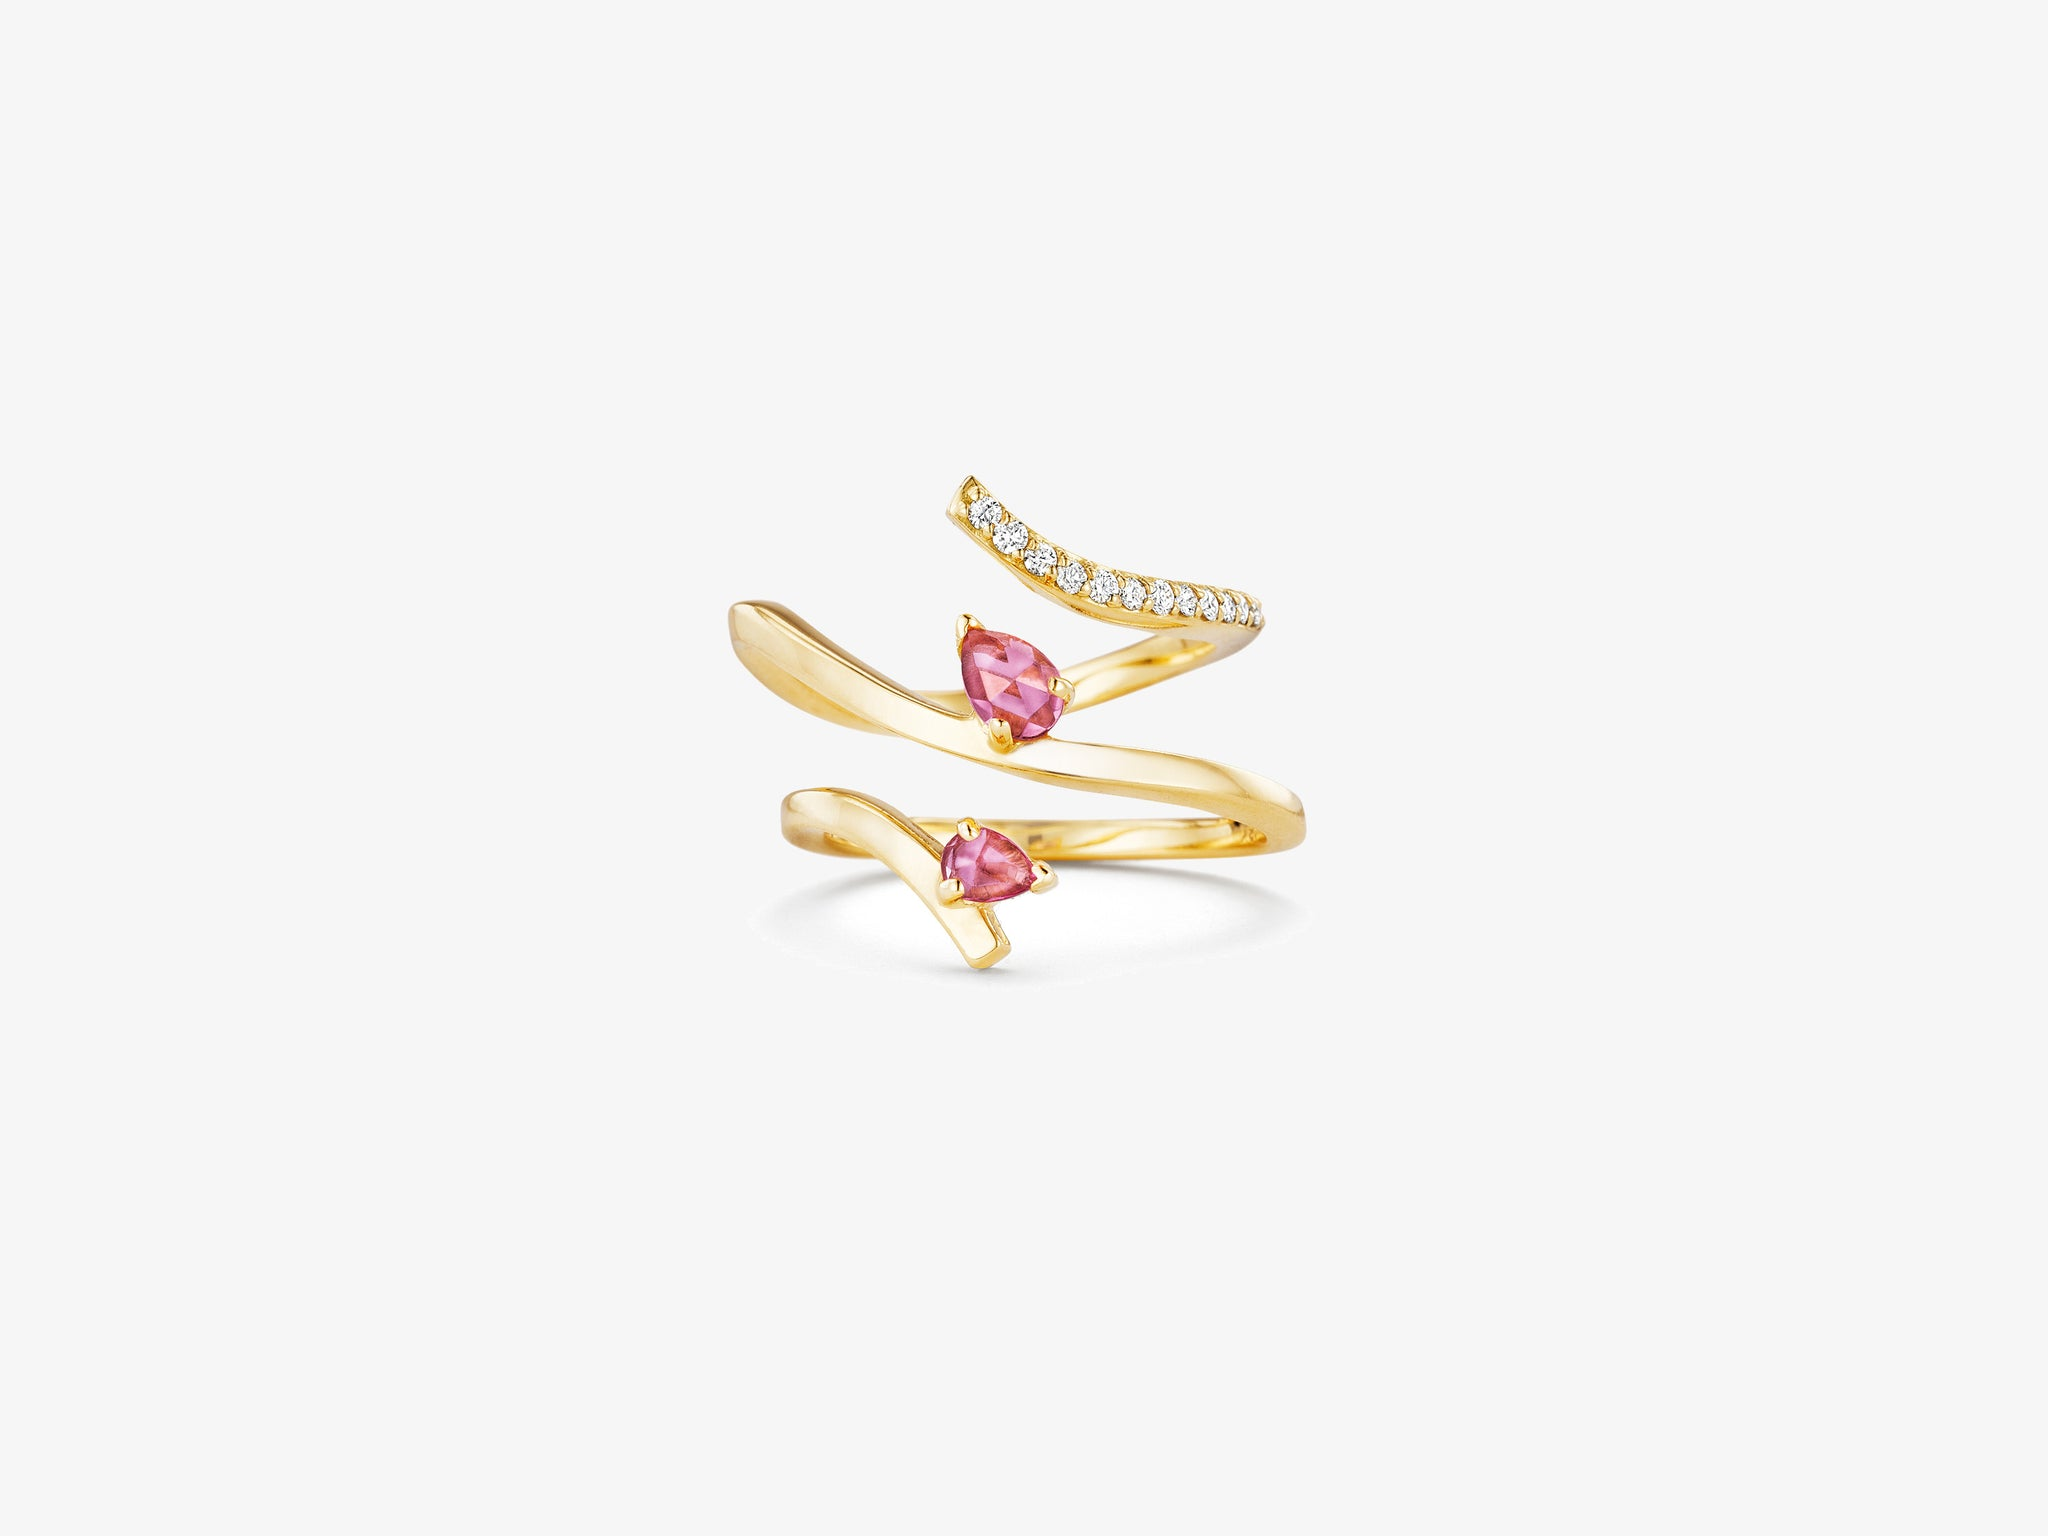 Asymmetrical Ring with Single Row of Diamond Pave and Rose Cut Stone Details